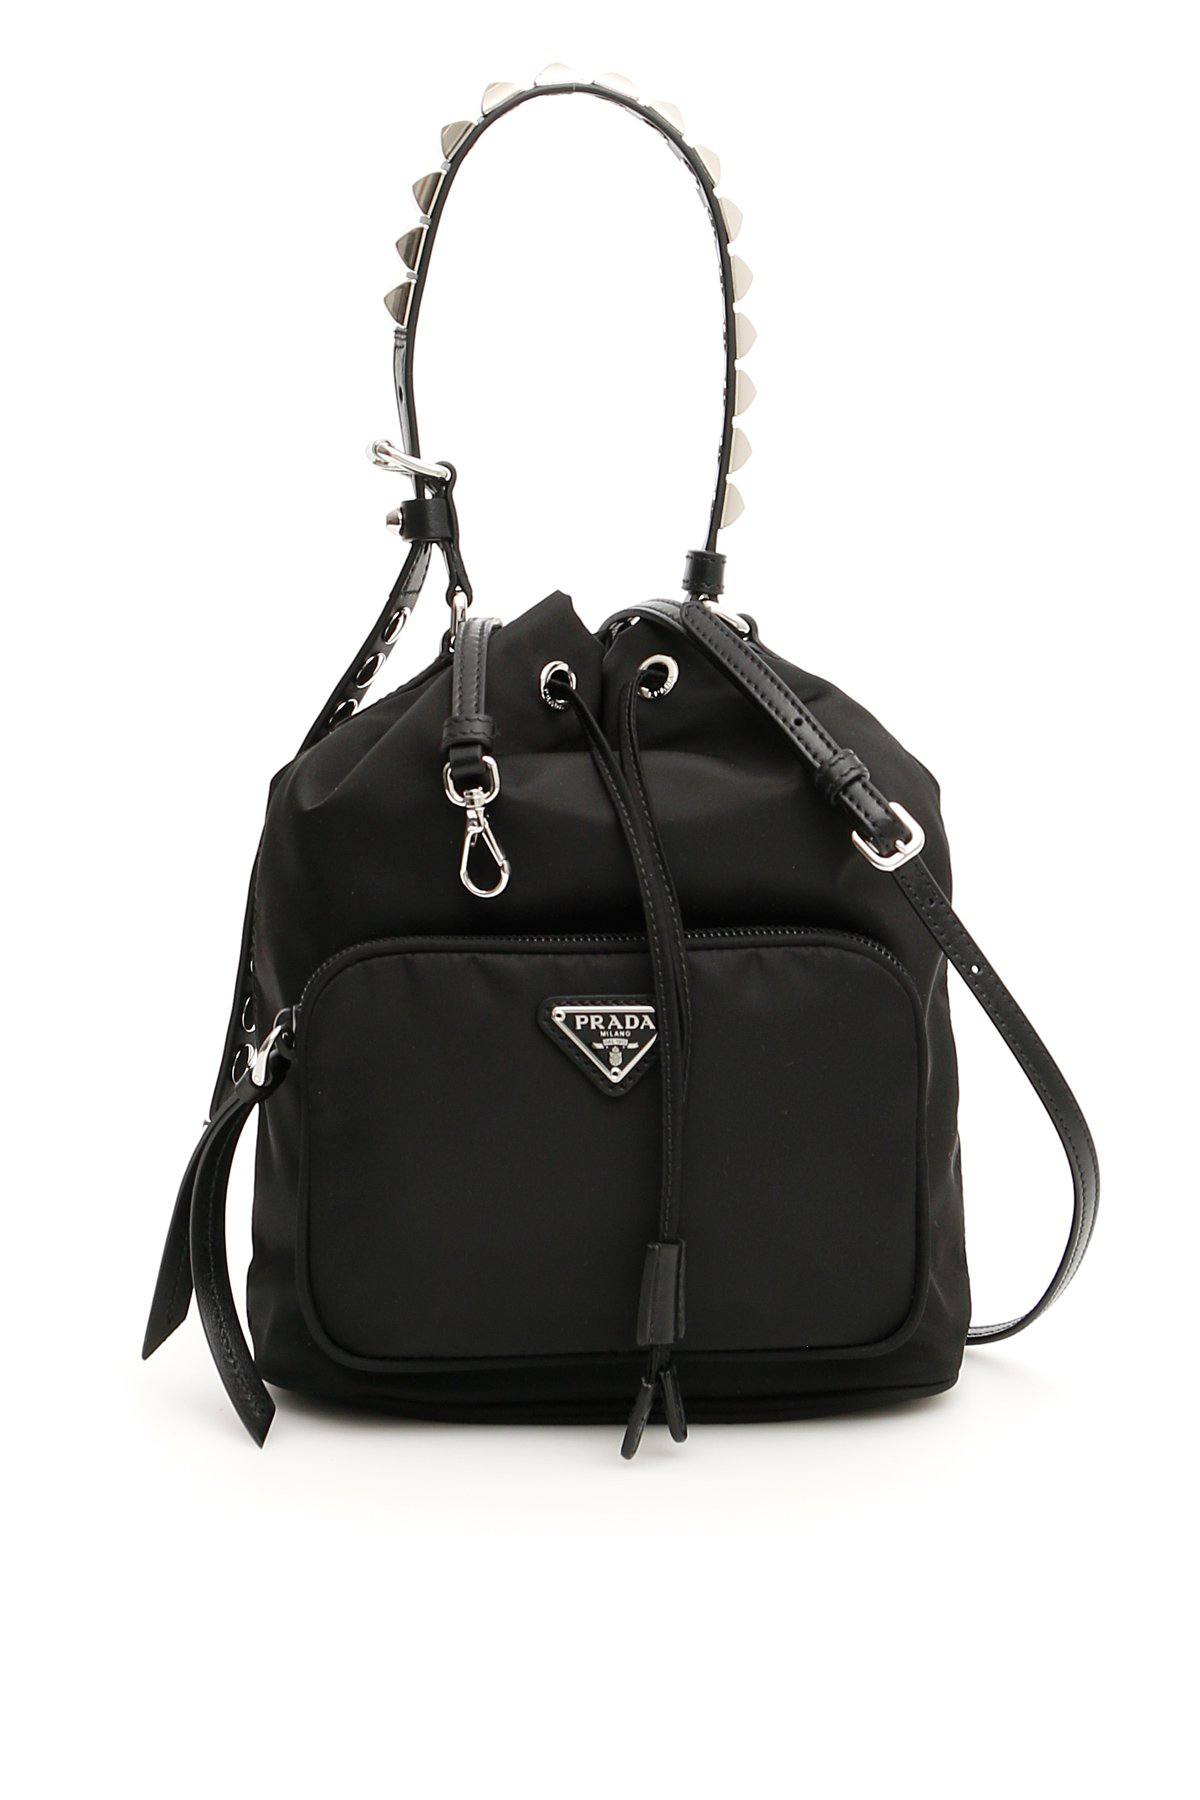 0e7af6fcf359 PRADA PRADA STUDDED STRAP SHOULDER BAG. Photo: CETTIRE